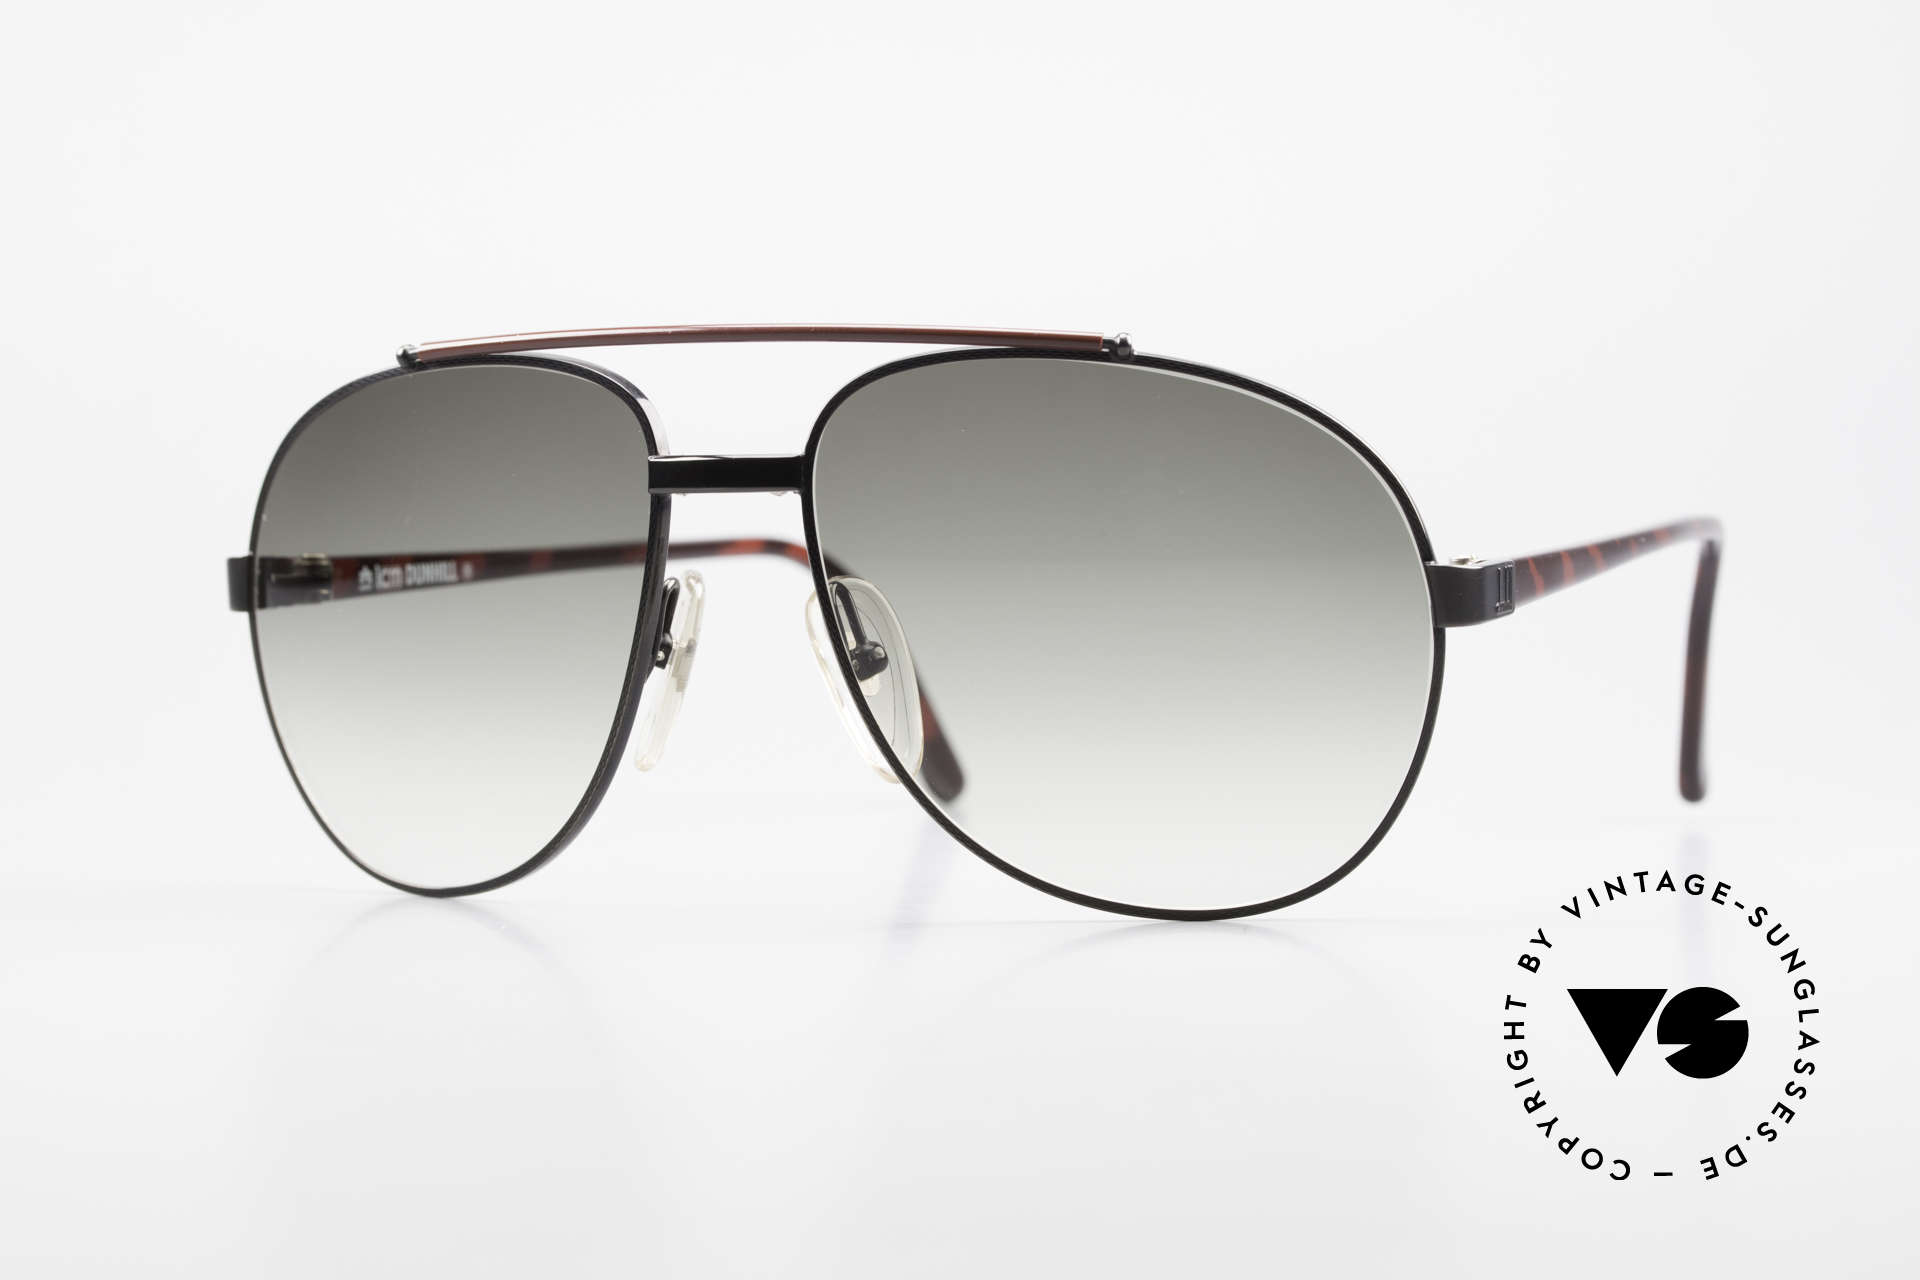 Dunhill 6070 Men's 90's Luxury Sunglasses, extremely stylish, precious and rare, !! vertu !!, Made for Men